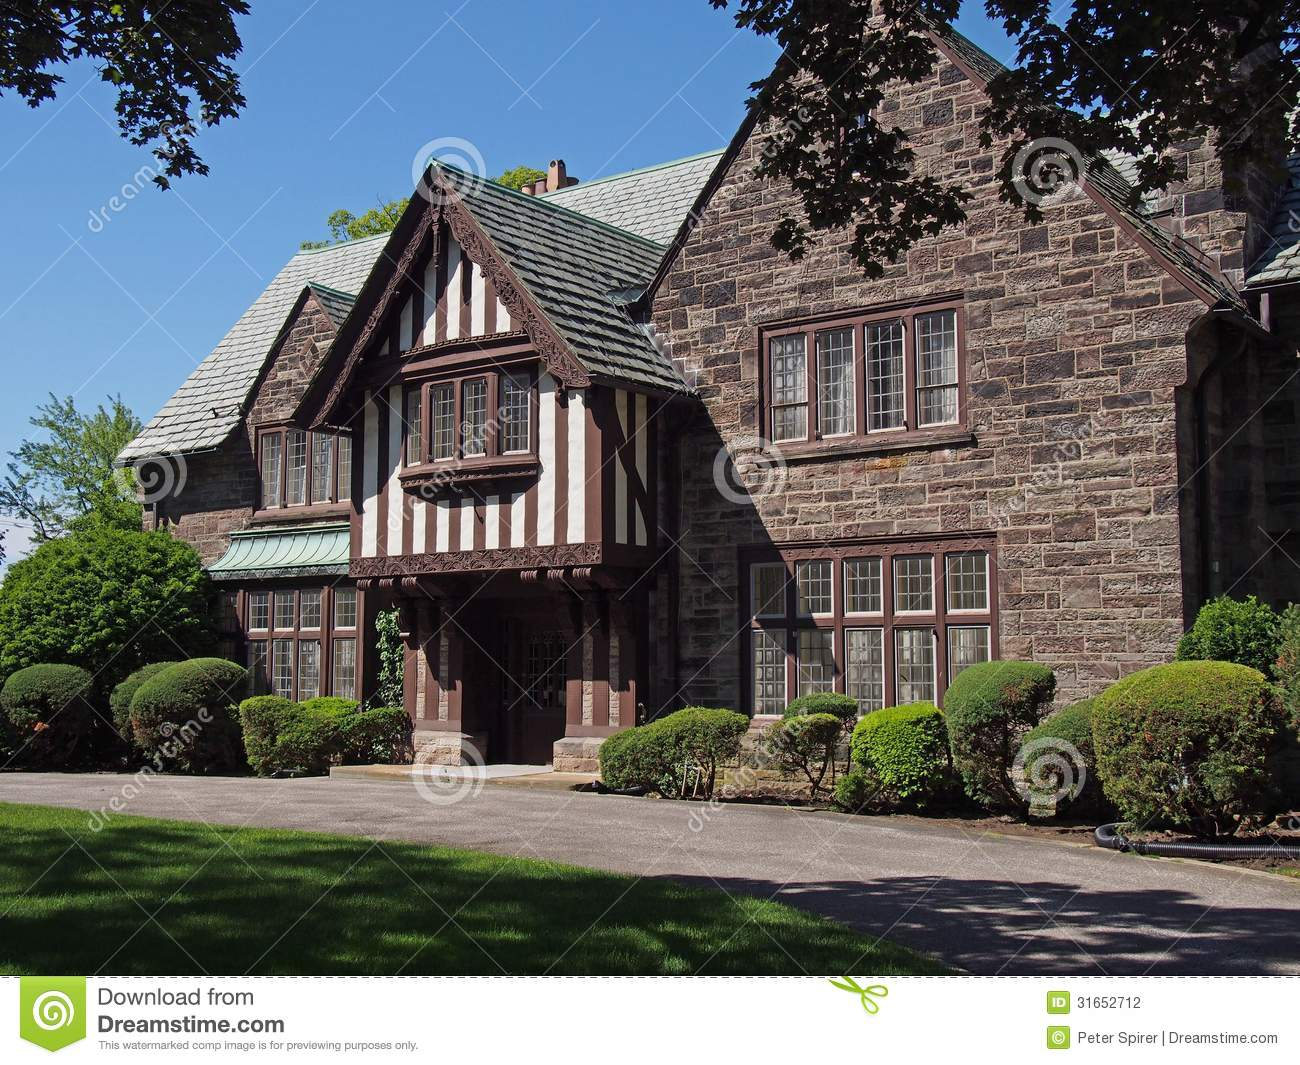 RearExtensionKT2 furthermore Framing together with Window House Design also Small Size Living Room Furniture additionally Shingle Style Architecture. on tudor exterior design